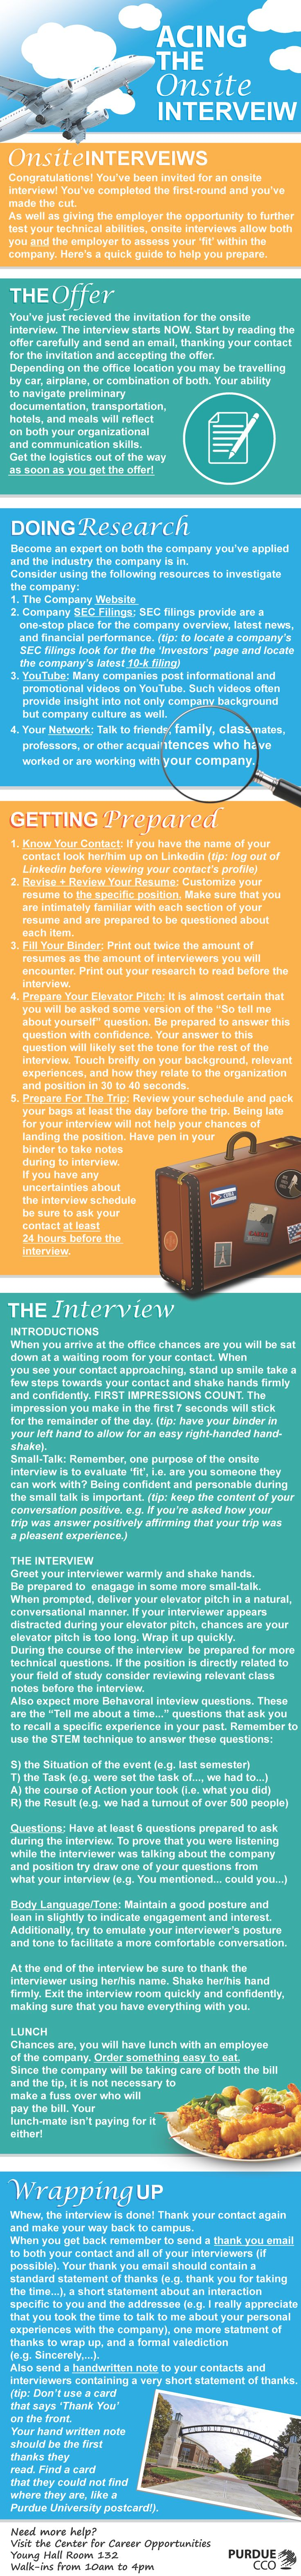 best images about interview success interview 17 best images about interview success interview interview questions and tips